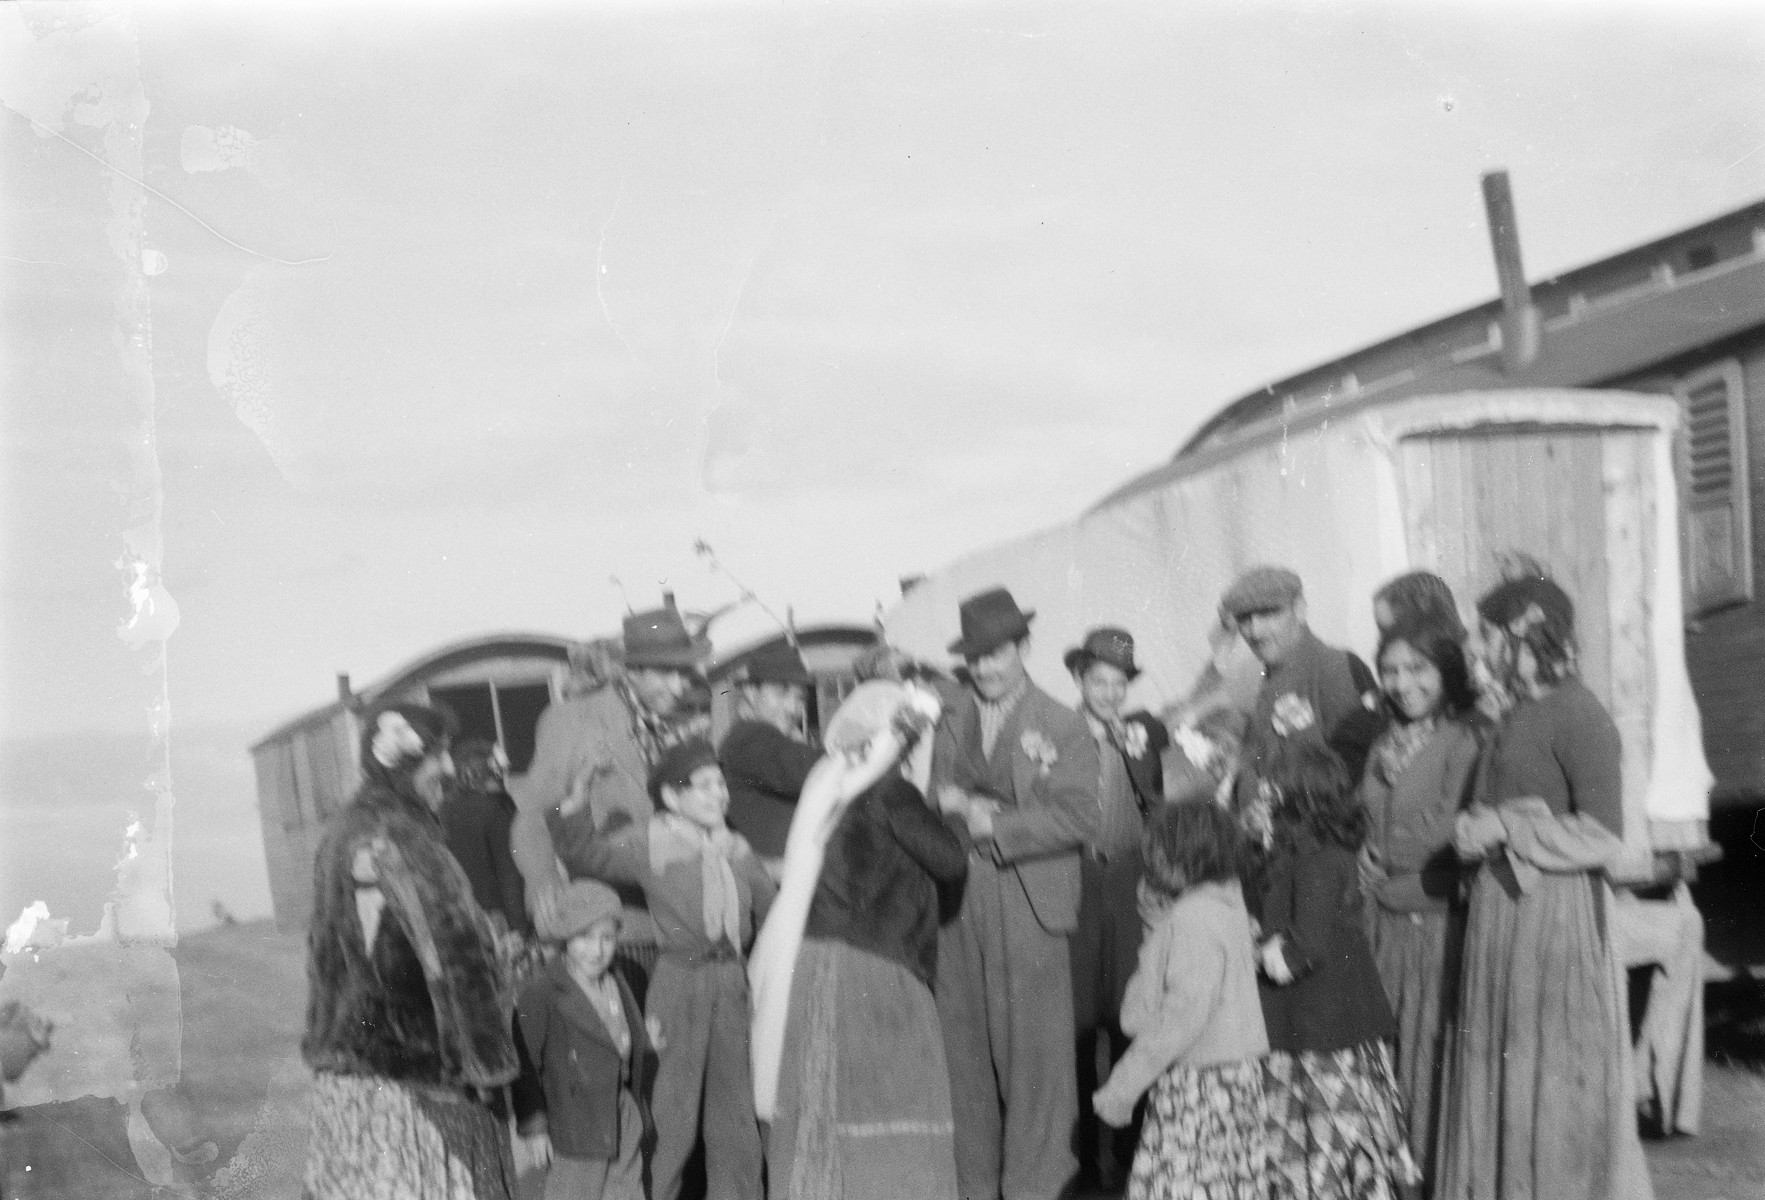 A group of Roma (Gypsies) gathers around a couple during a celebration (possibly a wedding).